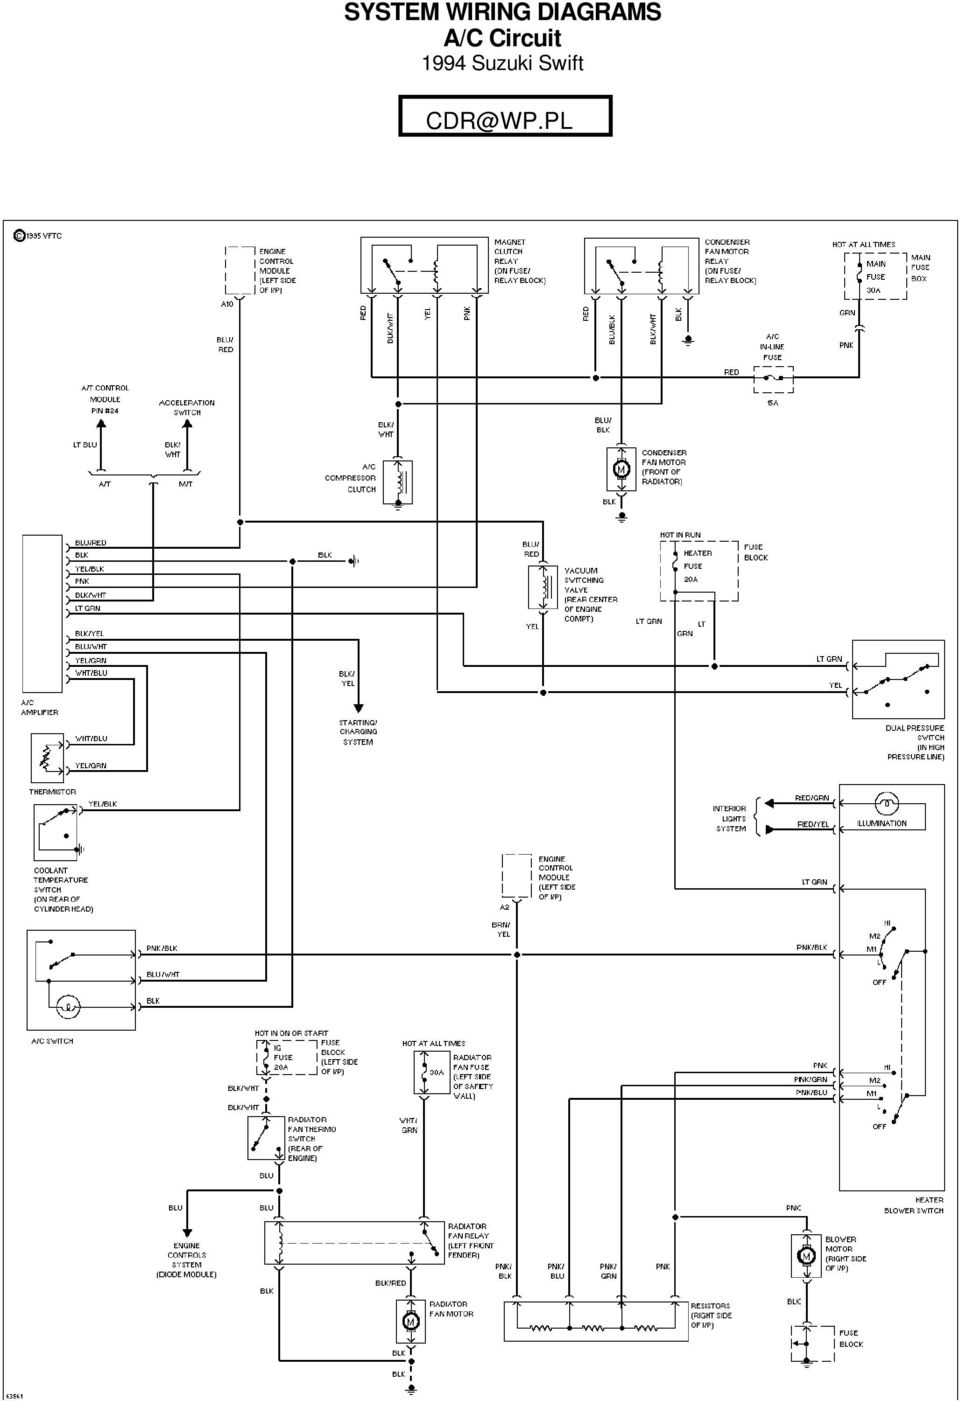 system wiring diagrams a c circuit 1994 suzuki swift for x copyright rh  docplayer net